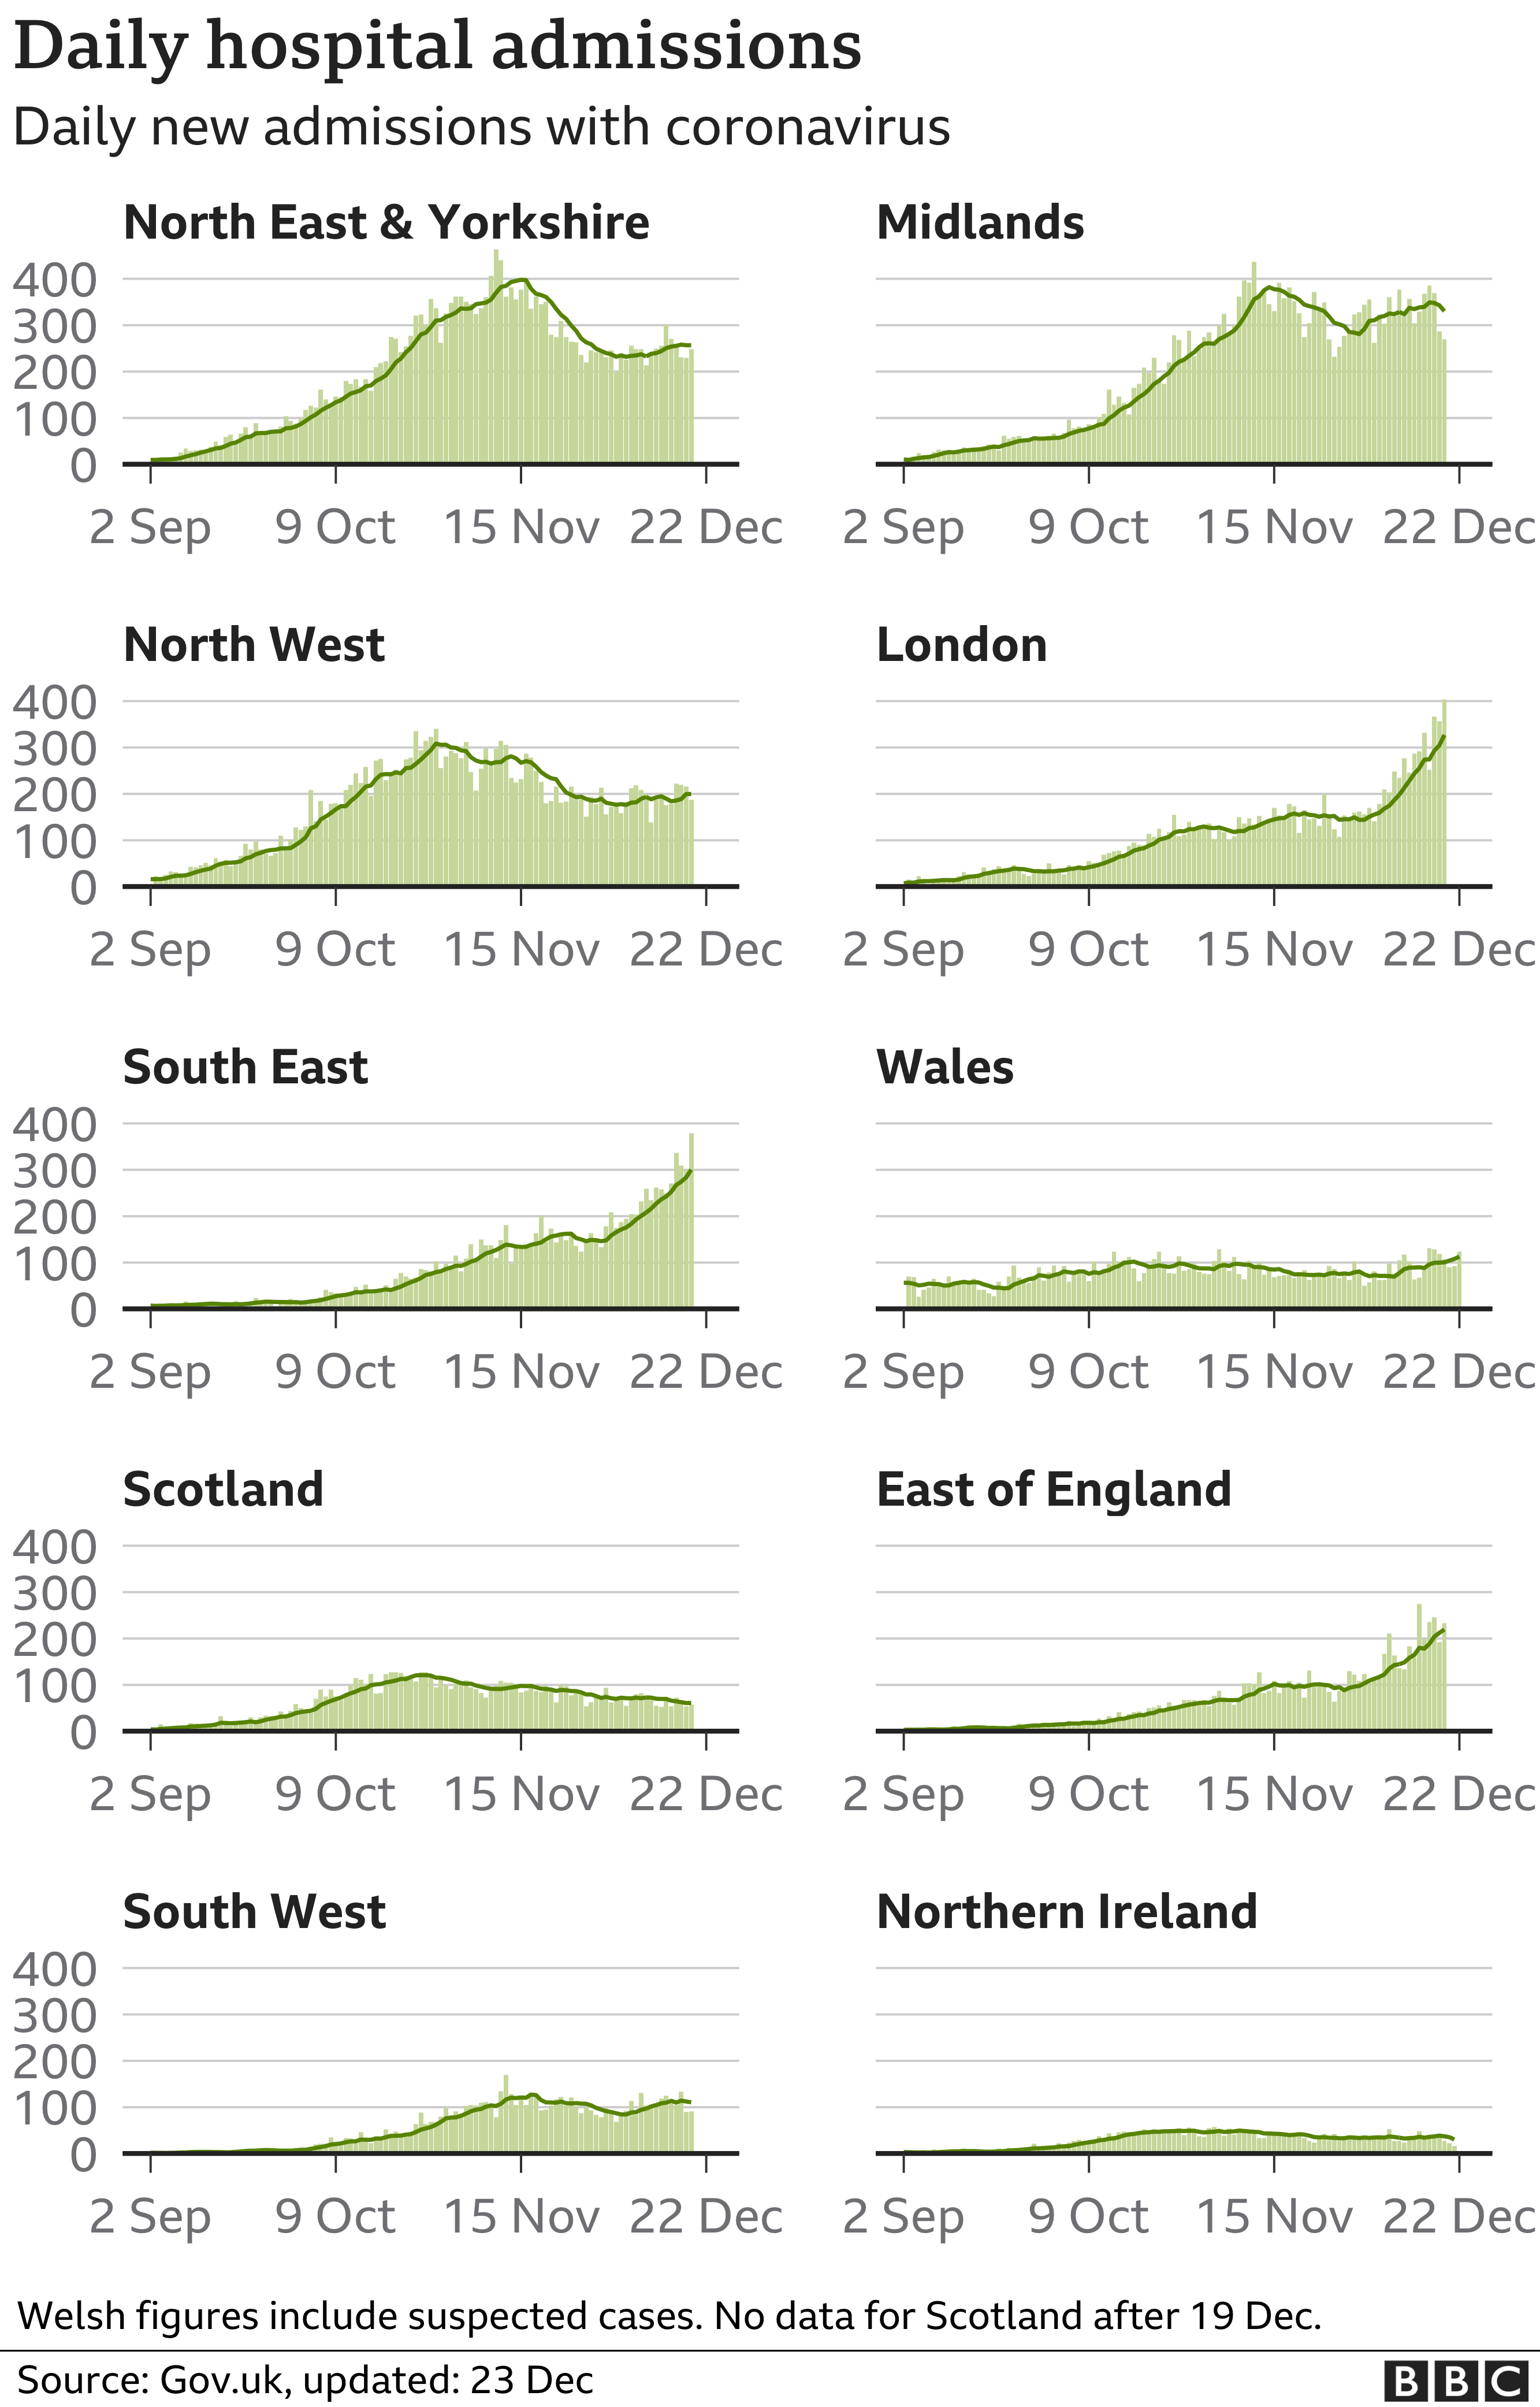 This chart, using data up to 23 December, shows how hospital admissions had been rising in London